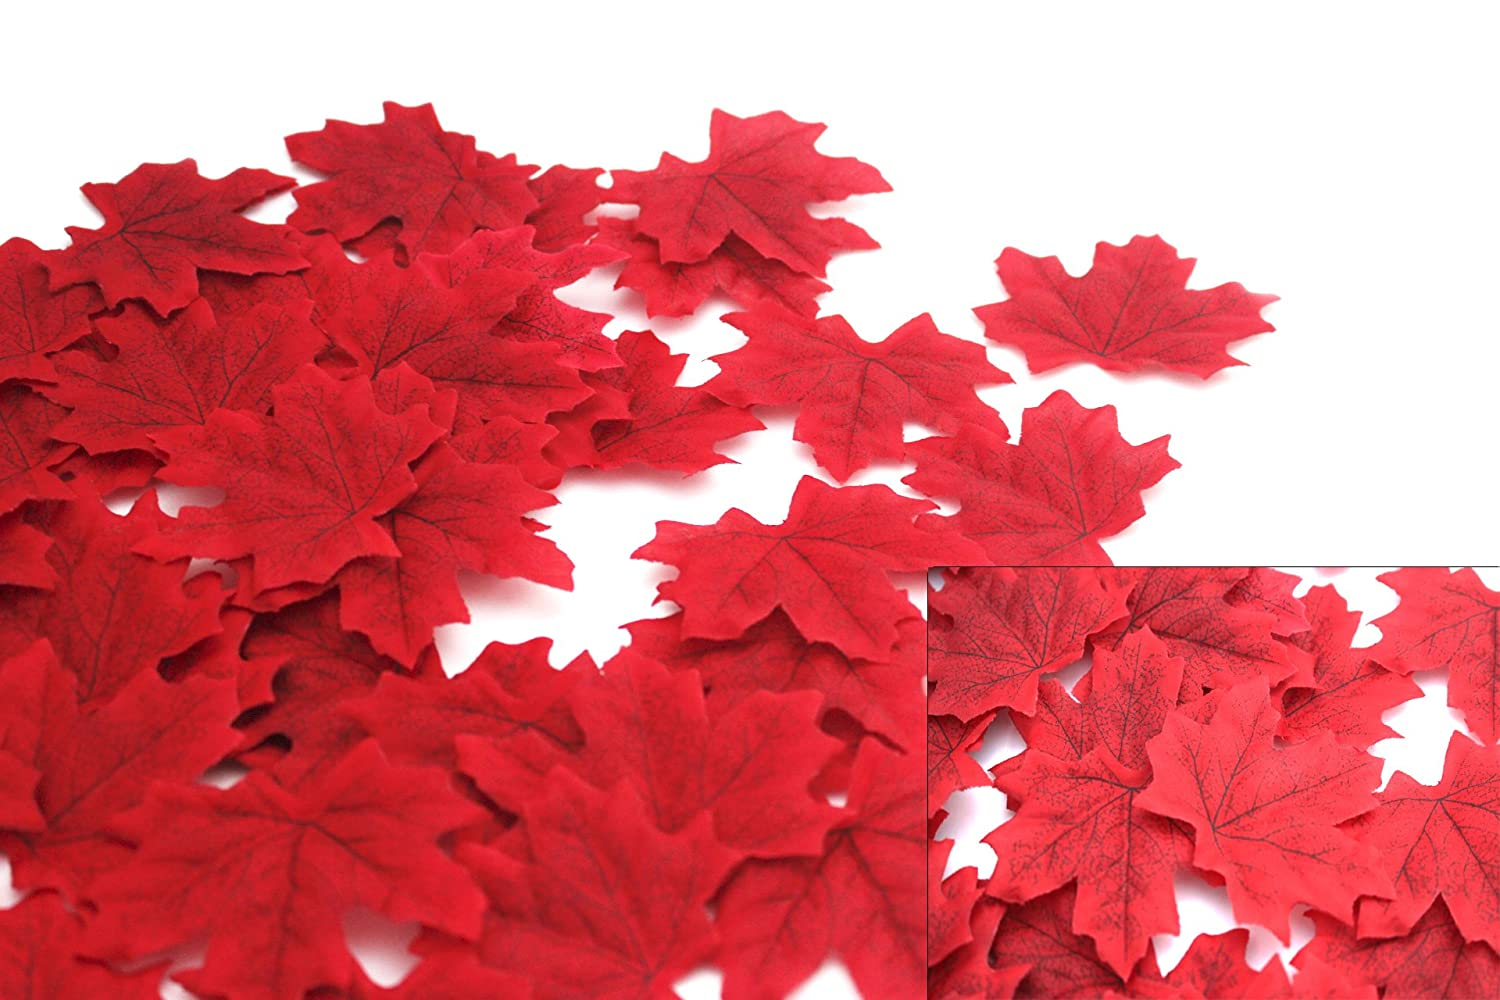 600 Assorted Mixed Deep Fall Colored Artificial Maple Leaves for Weddings, Thanks-Giving, Events and Outdoor Maple Leaf Cafe Decoration (600 Pieces) MerryNine